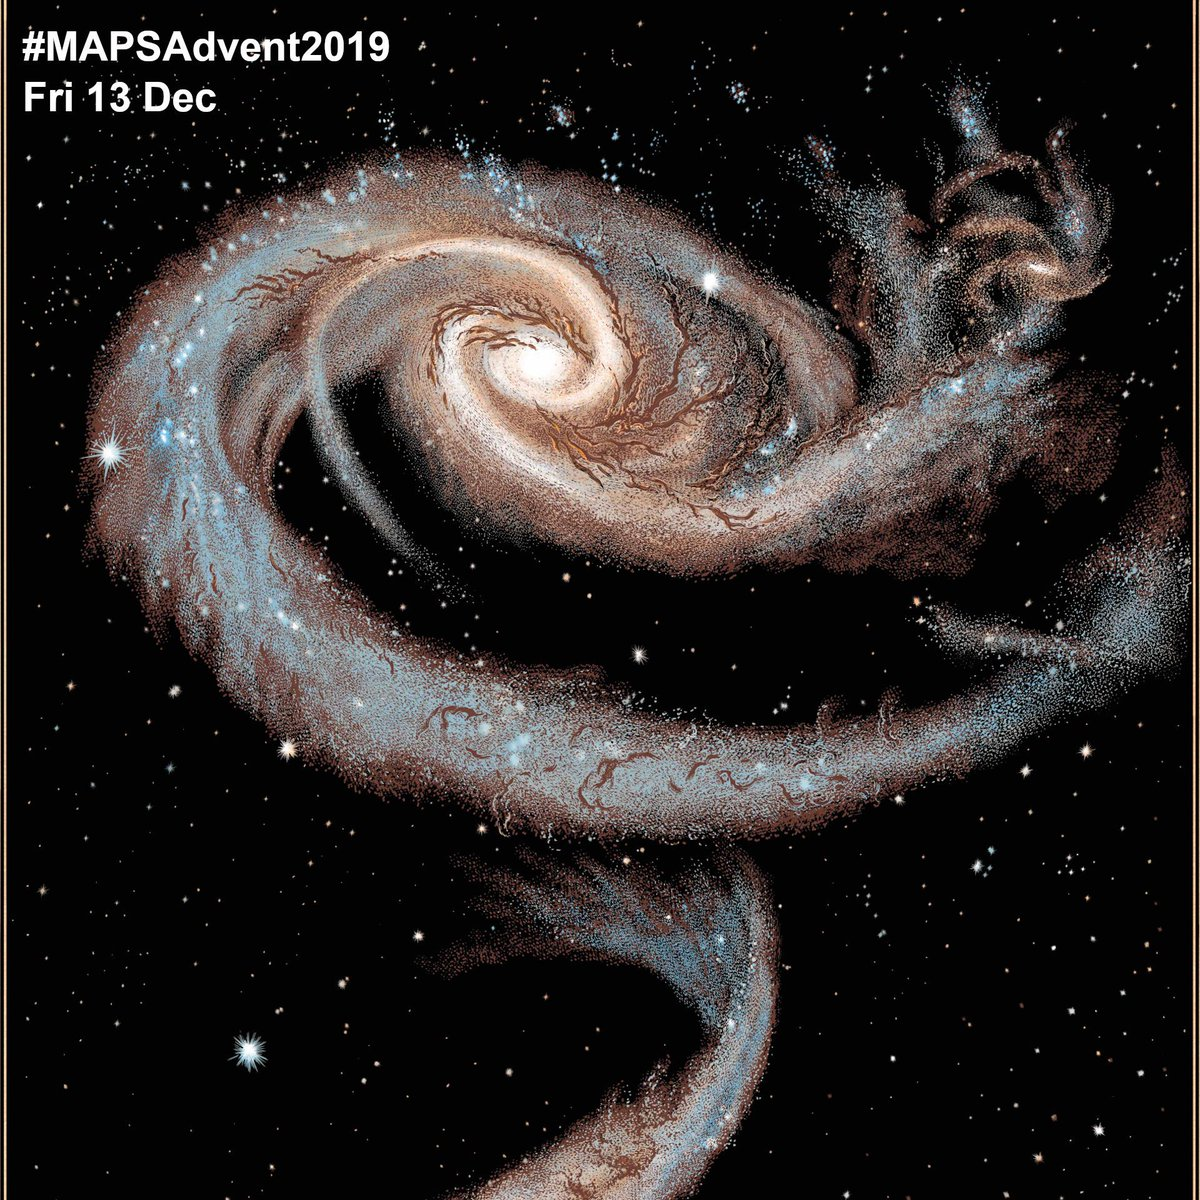 Day 13 of #MAPSAdvent2019 brings us an award winner. Head of UCL Physics Department Professor Raman Prinja and illustrator Chris Wormell created the book 'Planetarium', which in 2019 won prizes from @AIP_HQ and the @royalsociety - for more info, read ucl.ac.uk/news/2019/nov/…